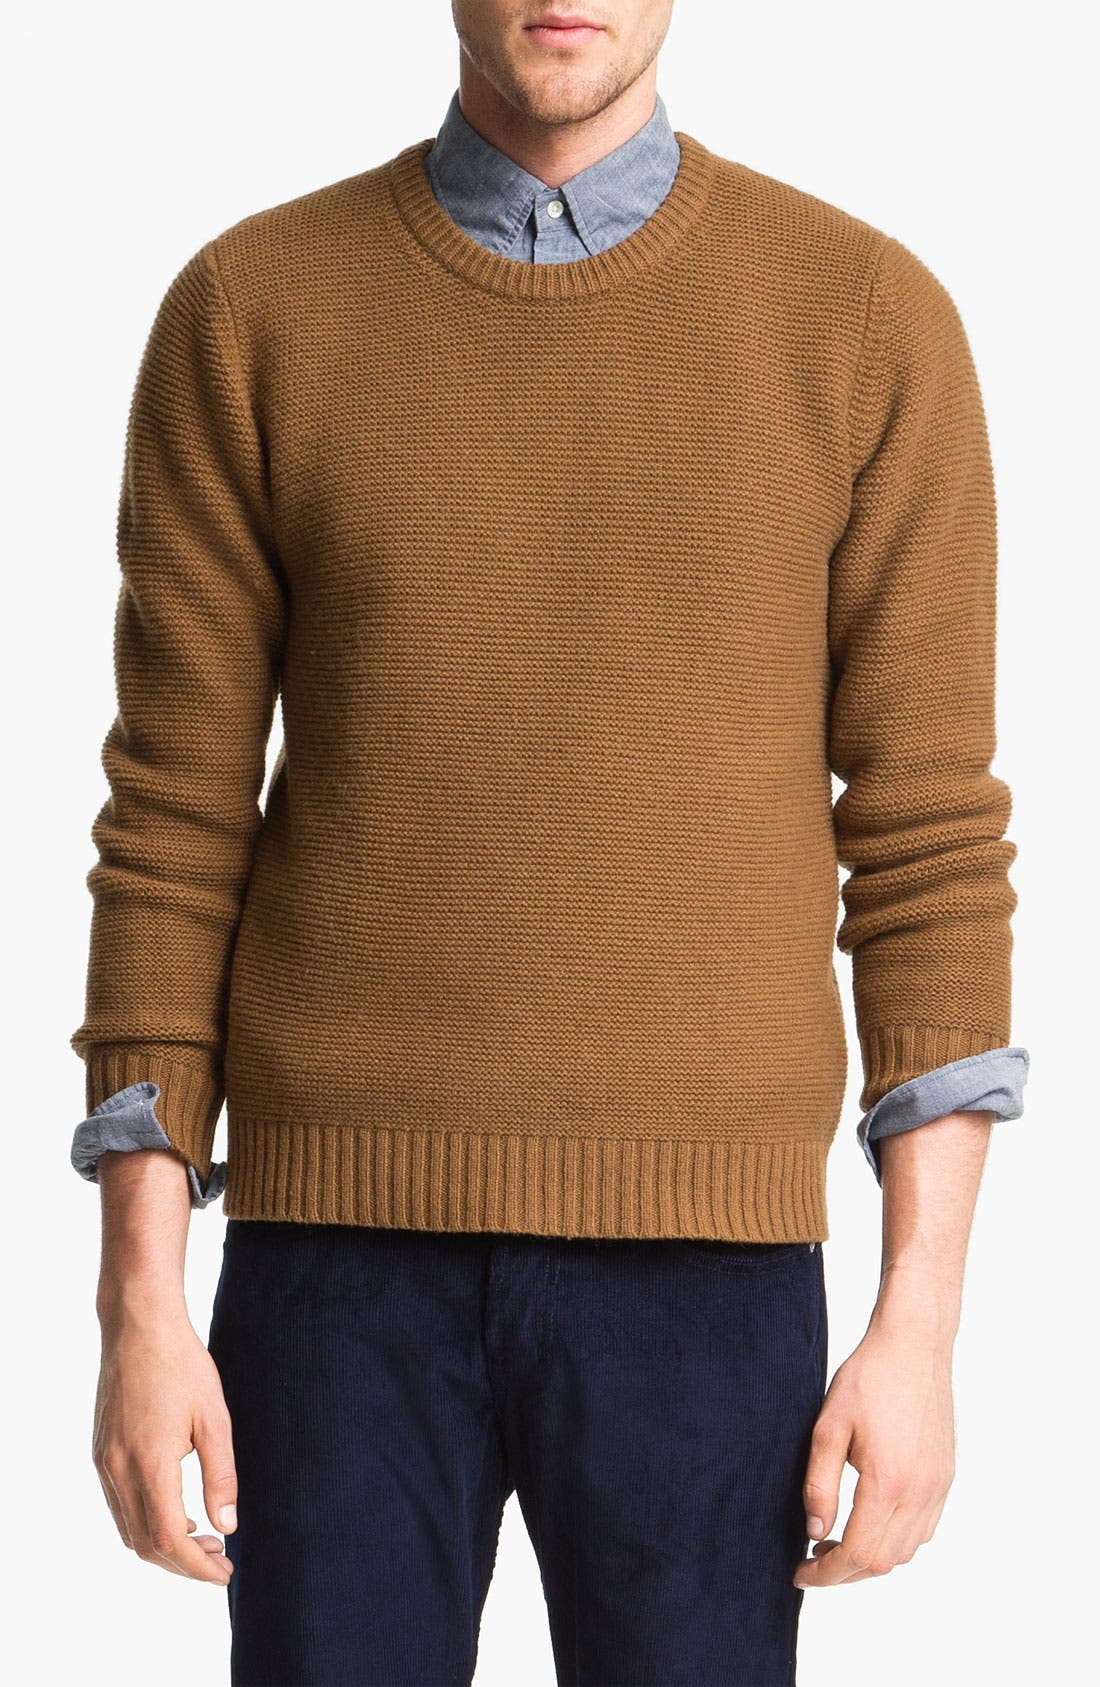 Alternate Image 1 Selected - Gant Rugger Crochet Knit Lambswool Sweater